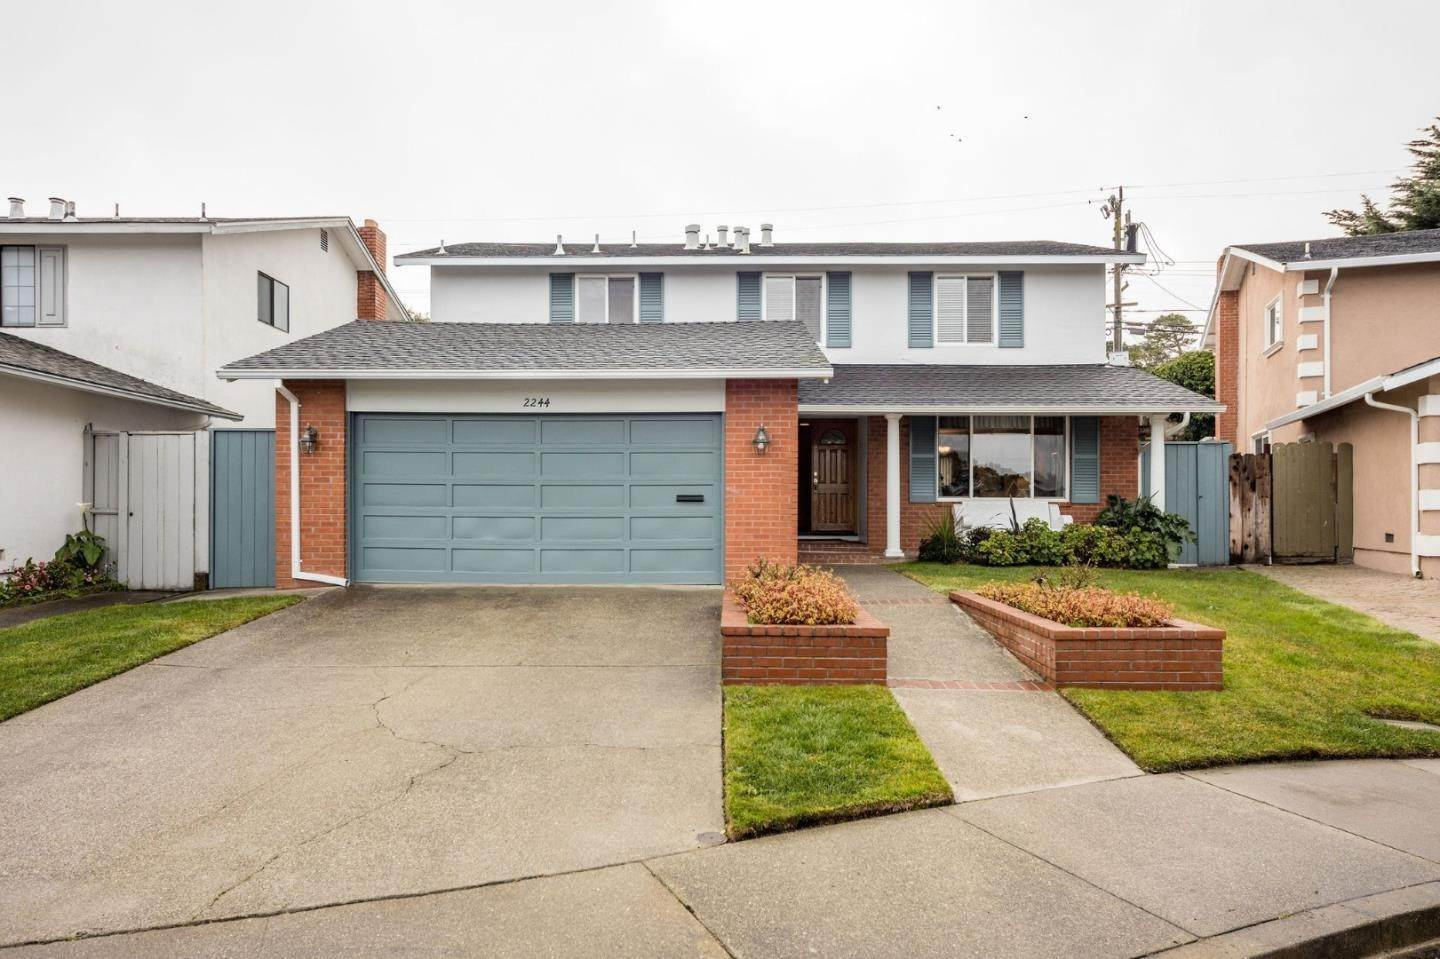 Single Family Homes for Sale at 2244 Kenry Way South San Francisco, California 94080 United States